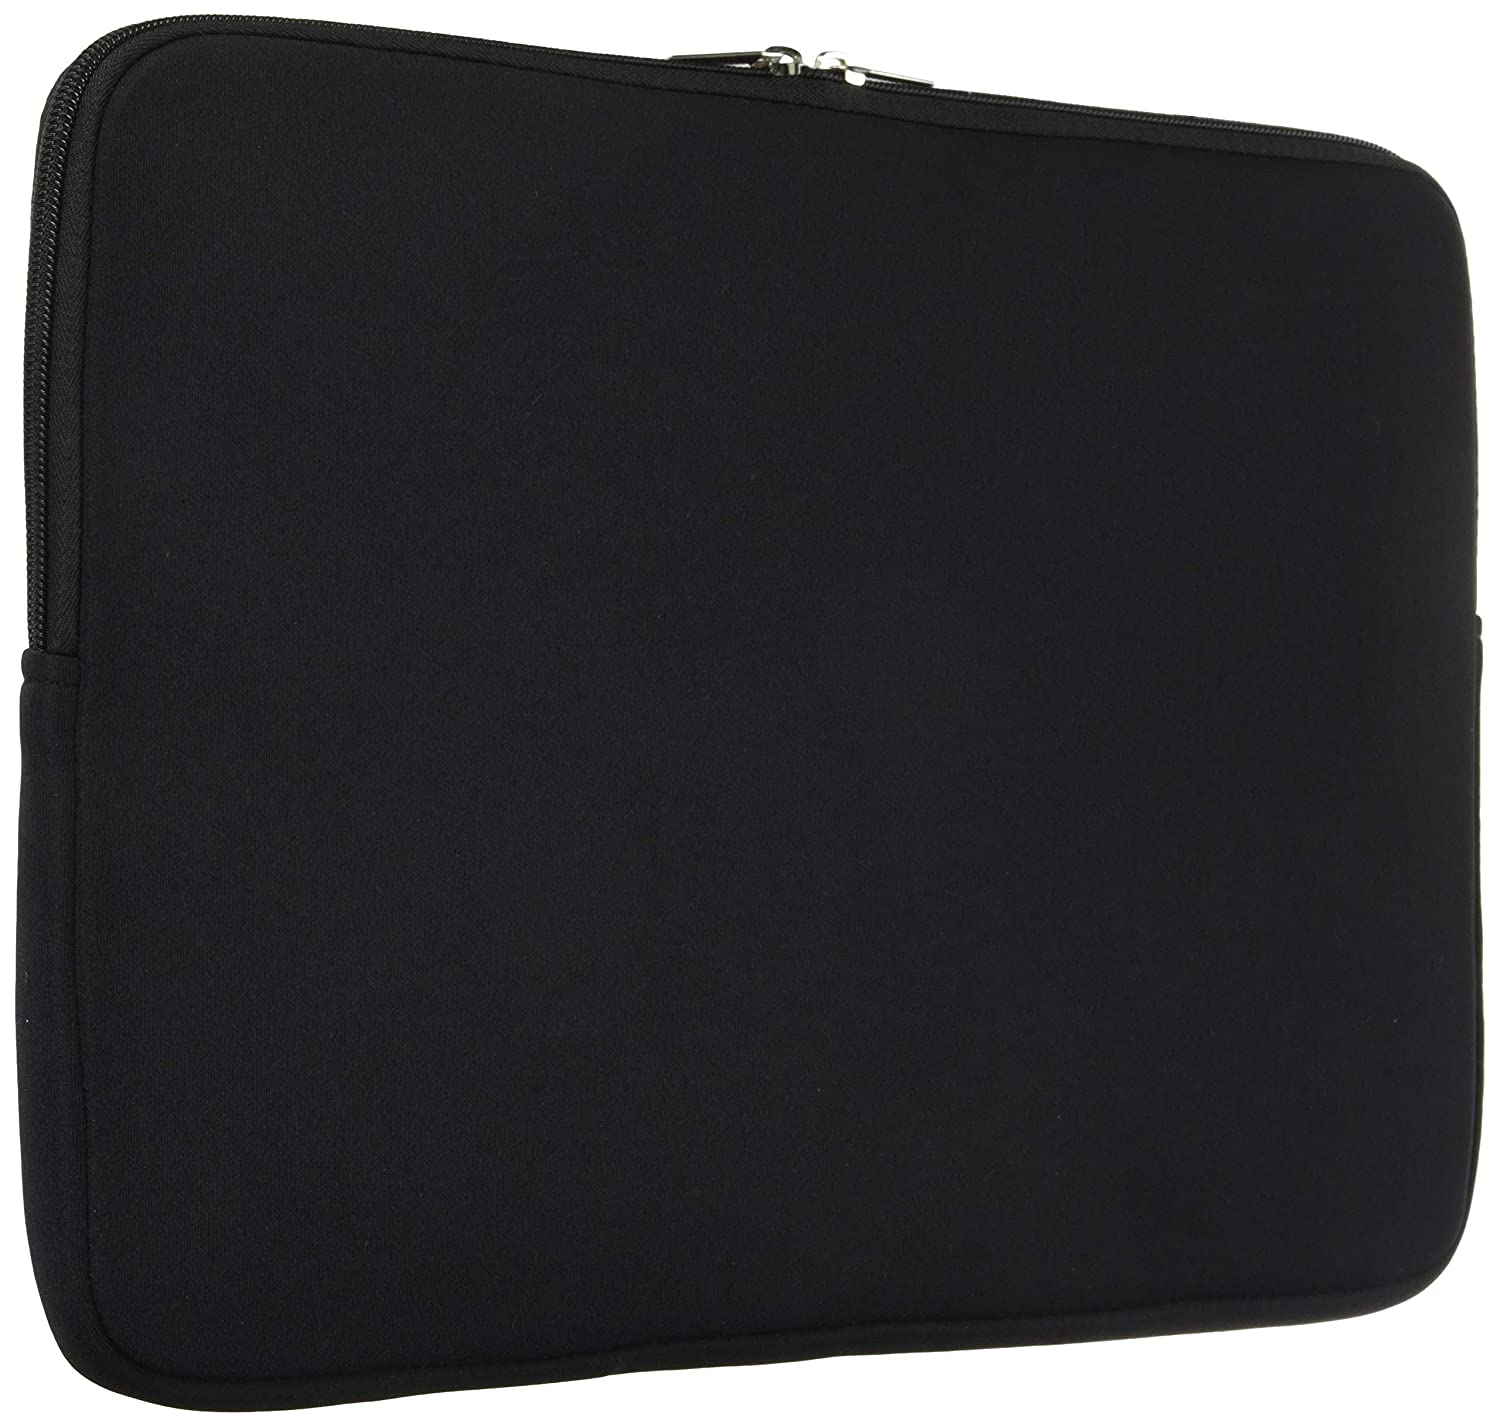 b1ea55fce16 Amazon.com  CCPK 13 Inch Laptop Sleeve 13.3 Inch Computer Bag 13.3-inch  Netbook Sleeves 12.9 in Tablet Carrying Case Cover Bags 13